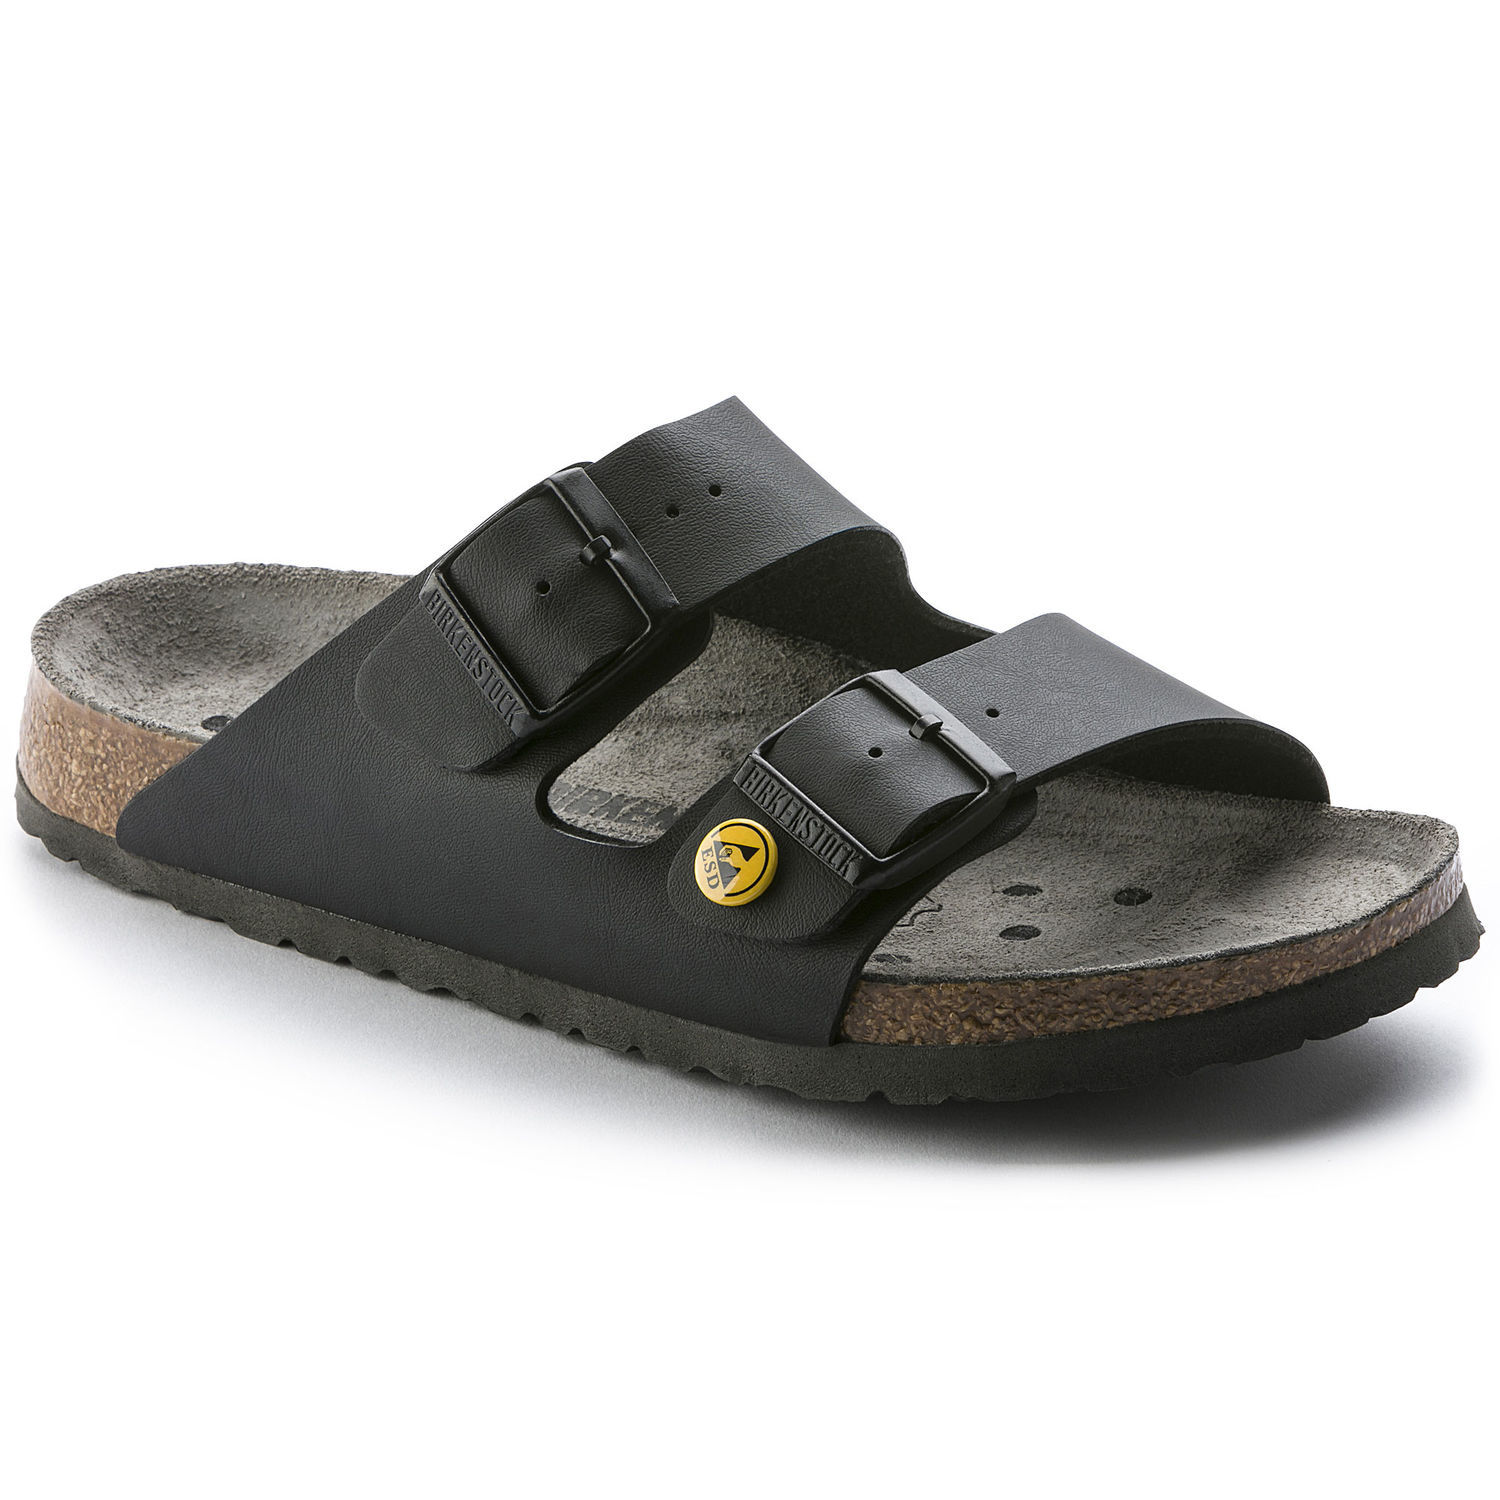 Image of   Sort Arizona ESD sandal fra Birkenstock - 39